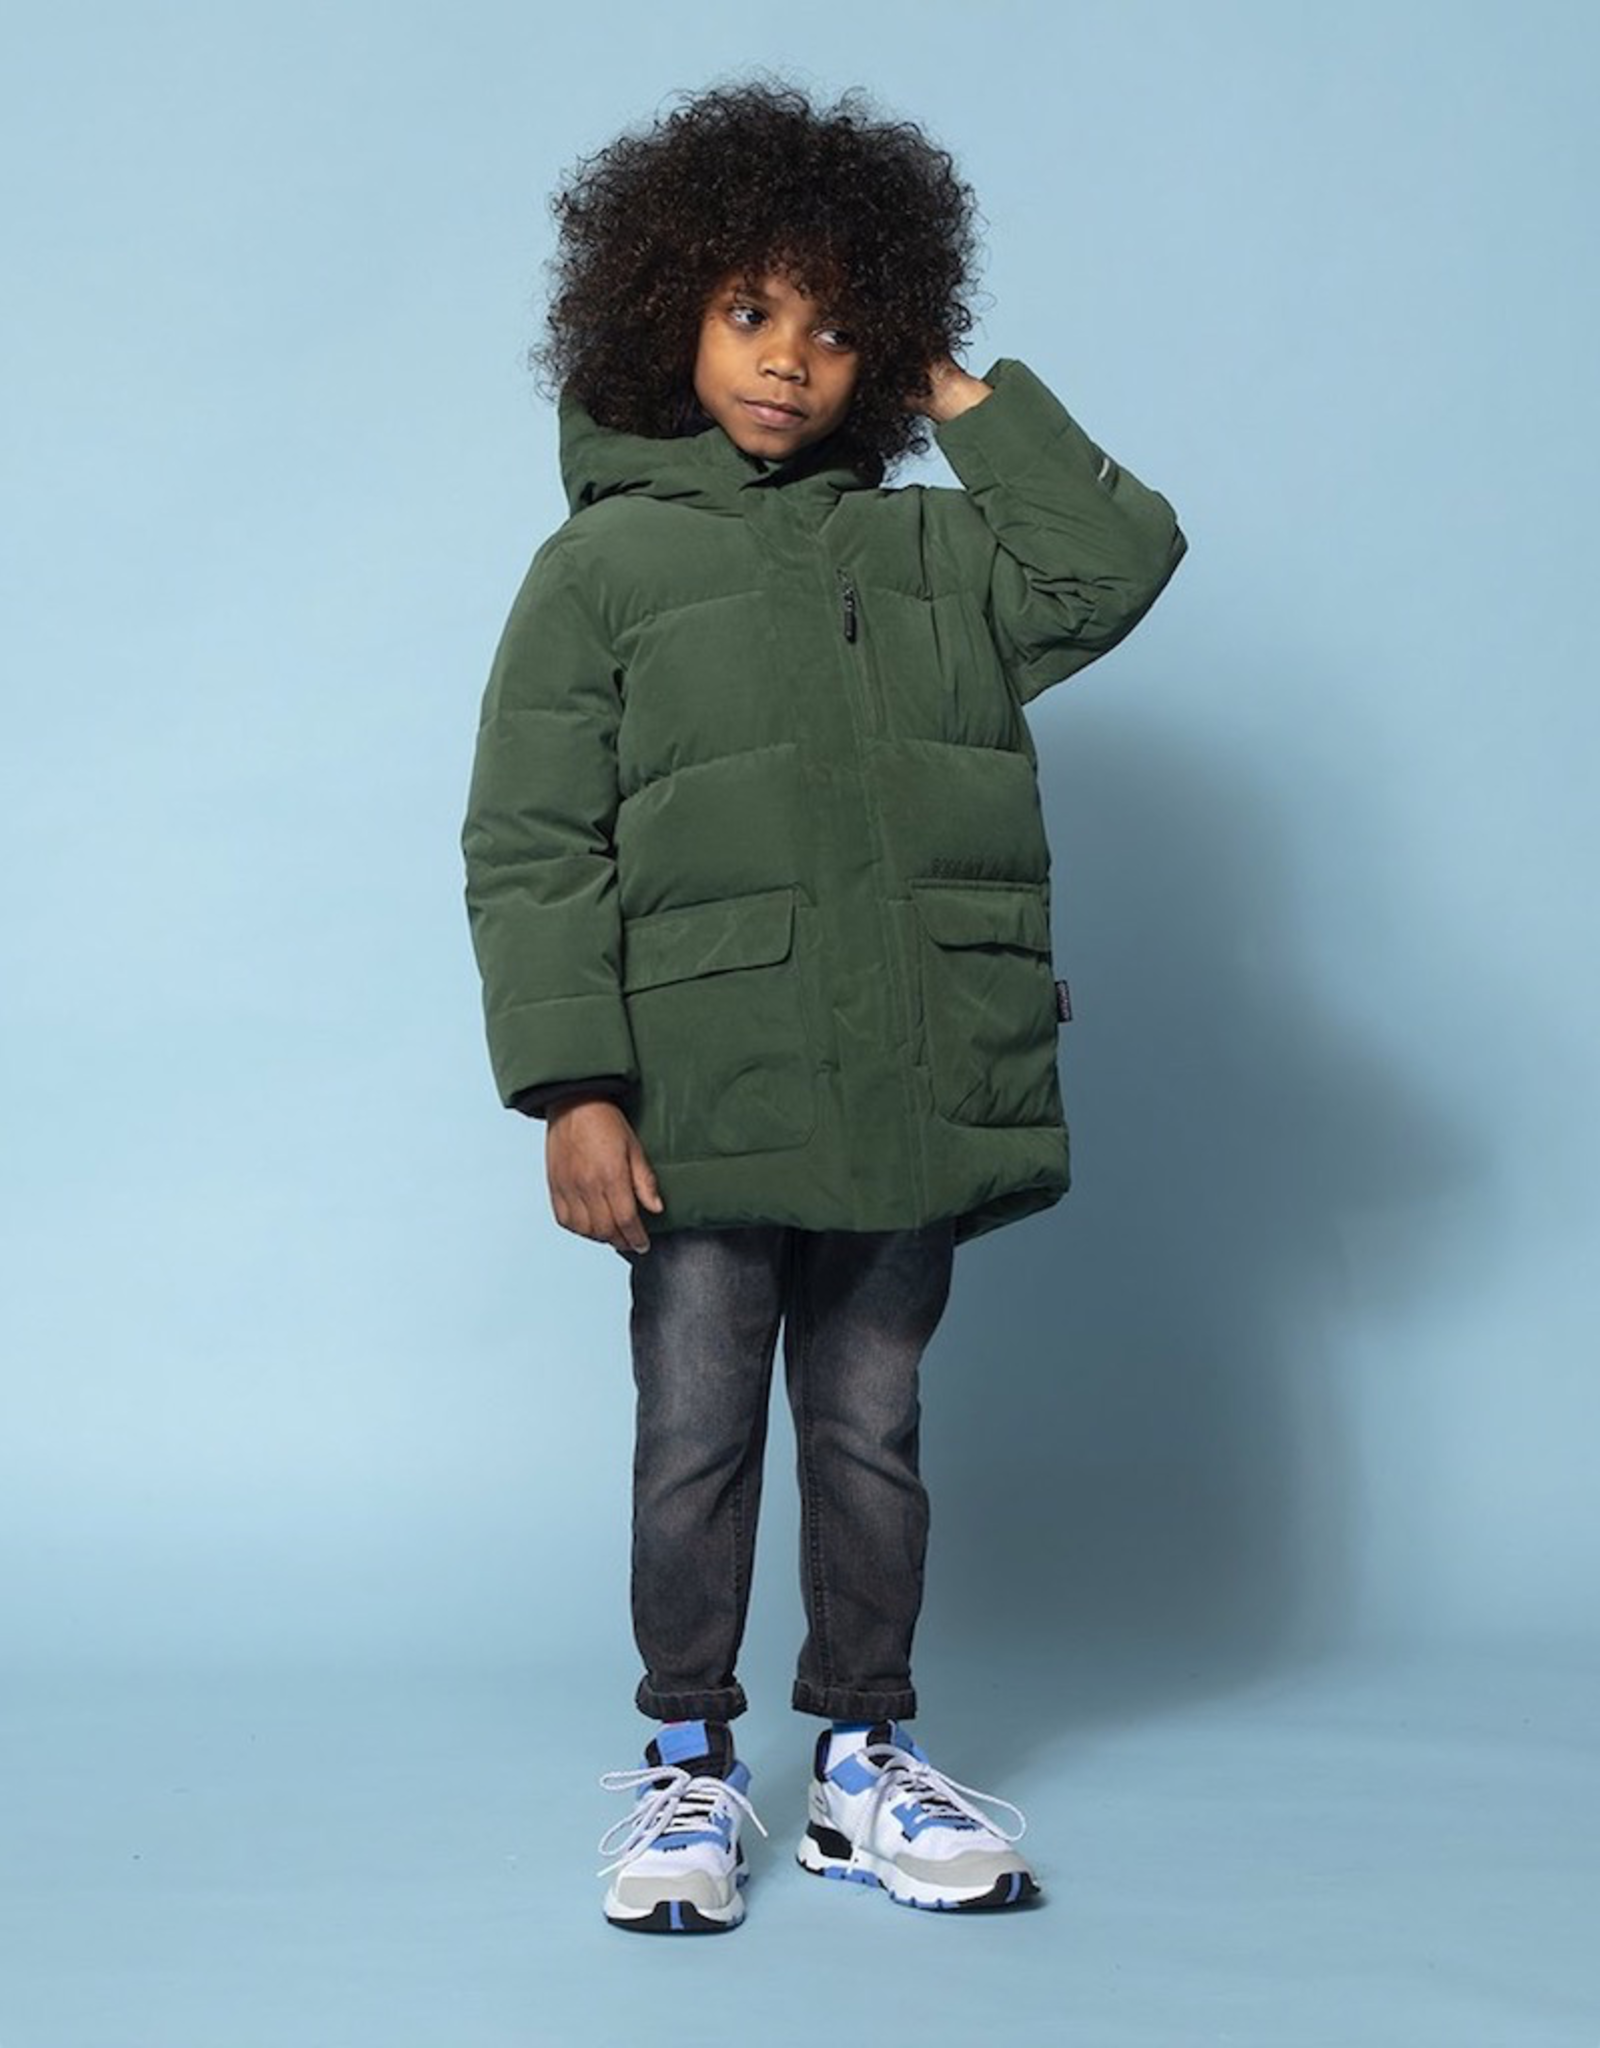 Go Soaky Tiger Eye Unisex Puffer Jacket In Green Forest